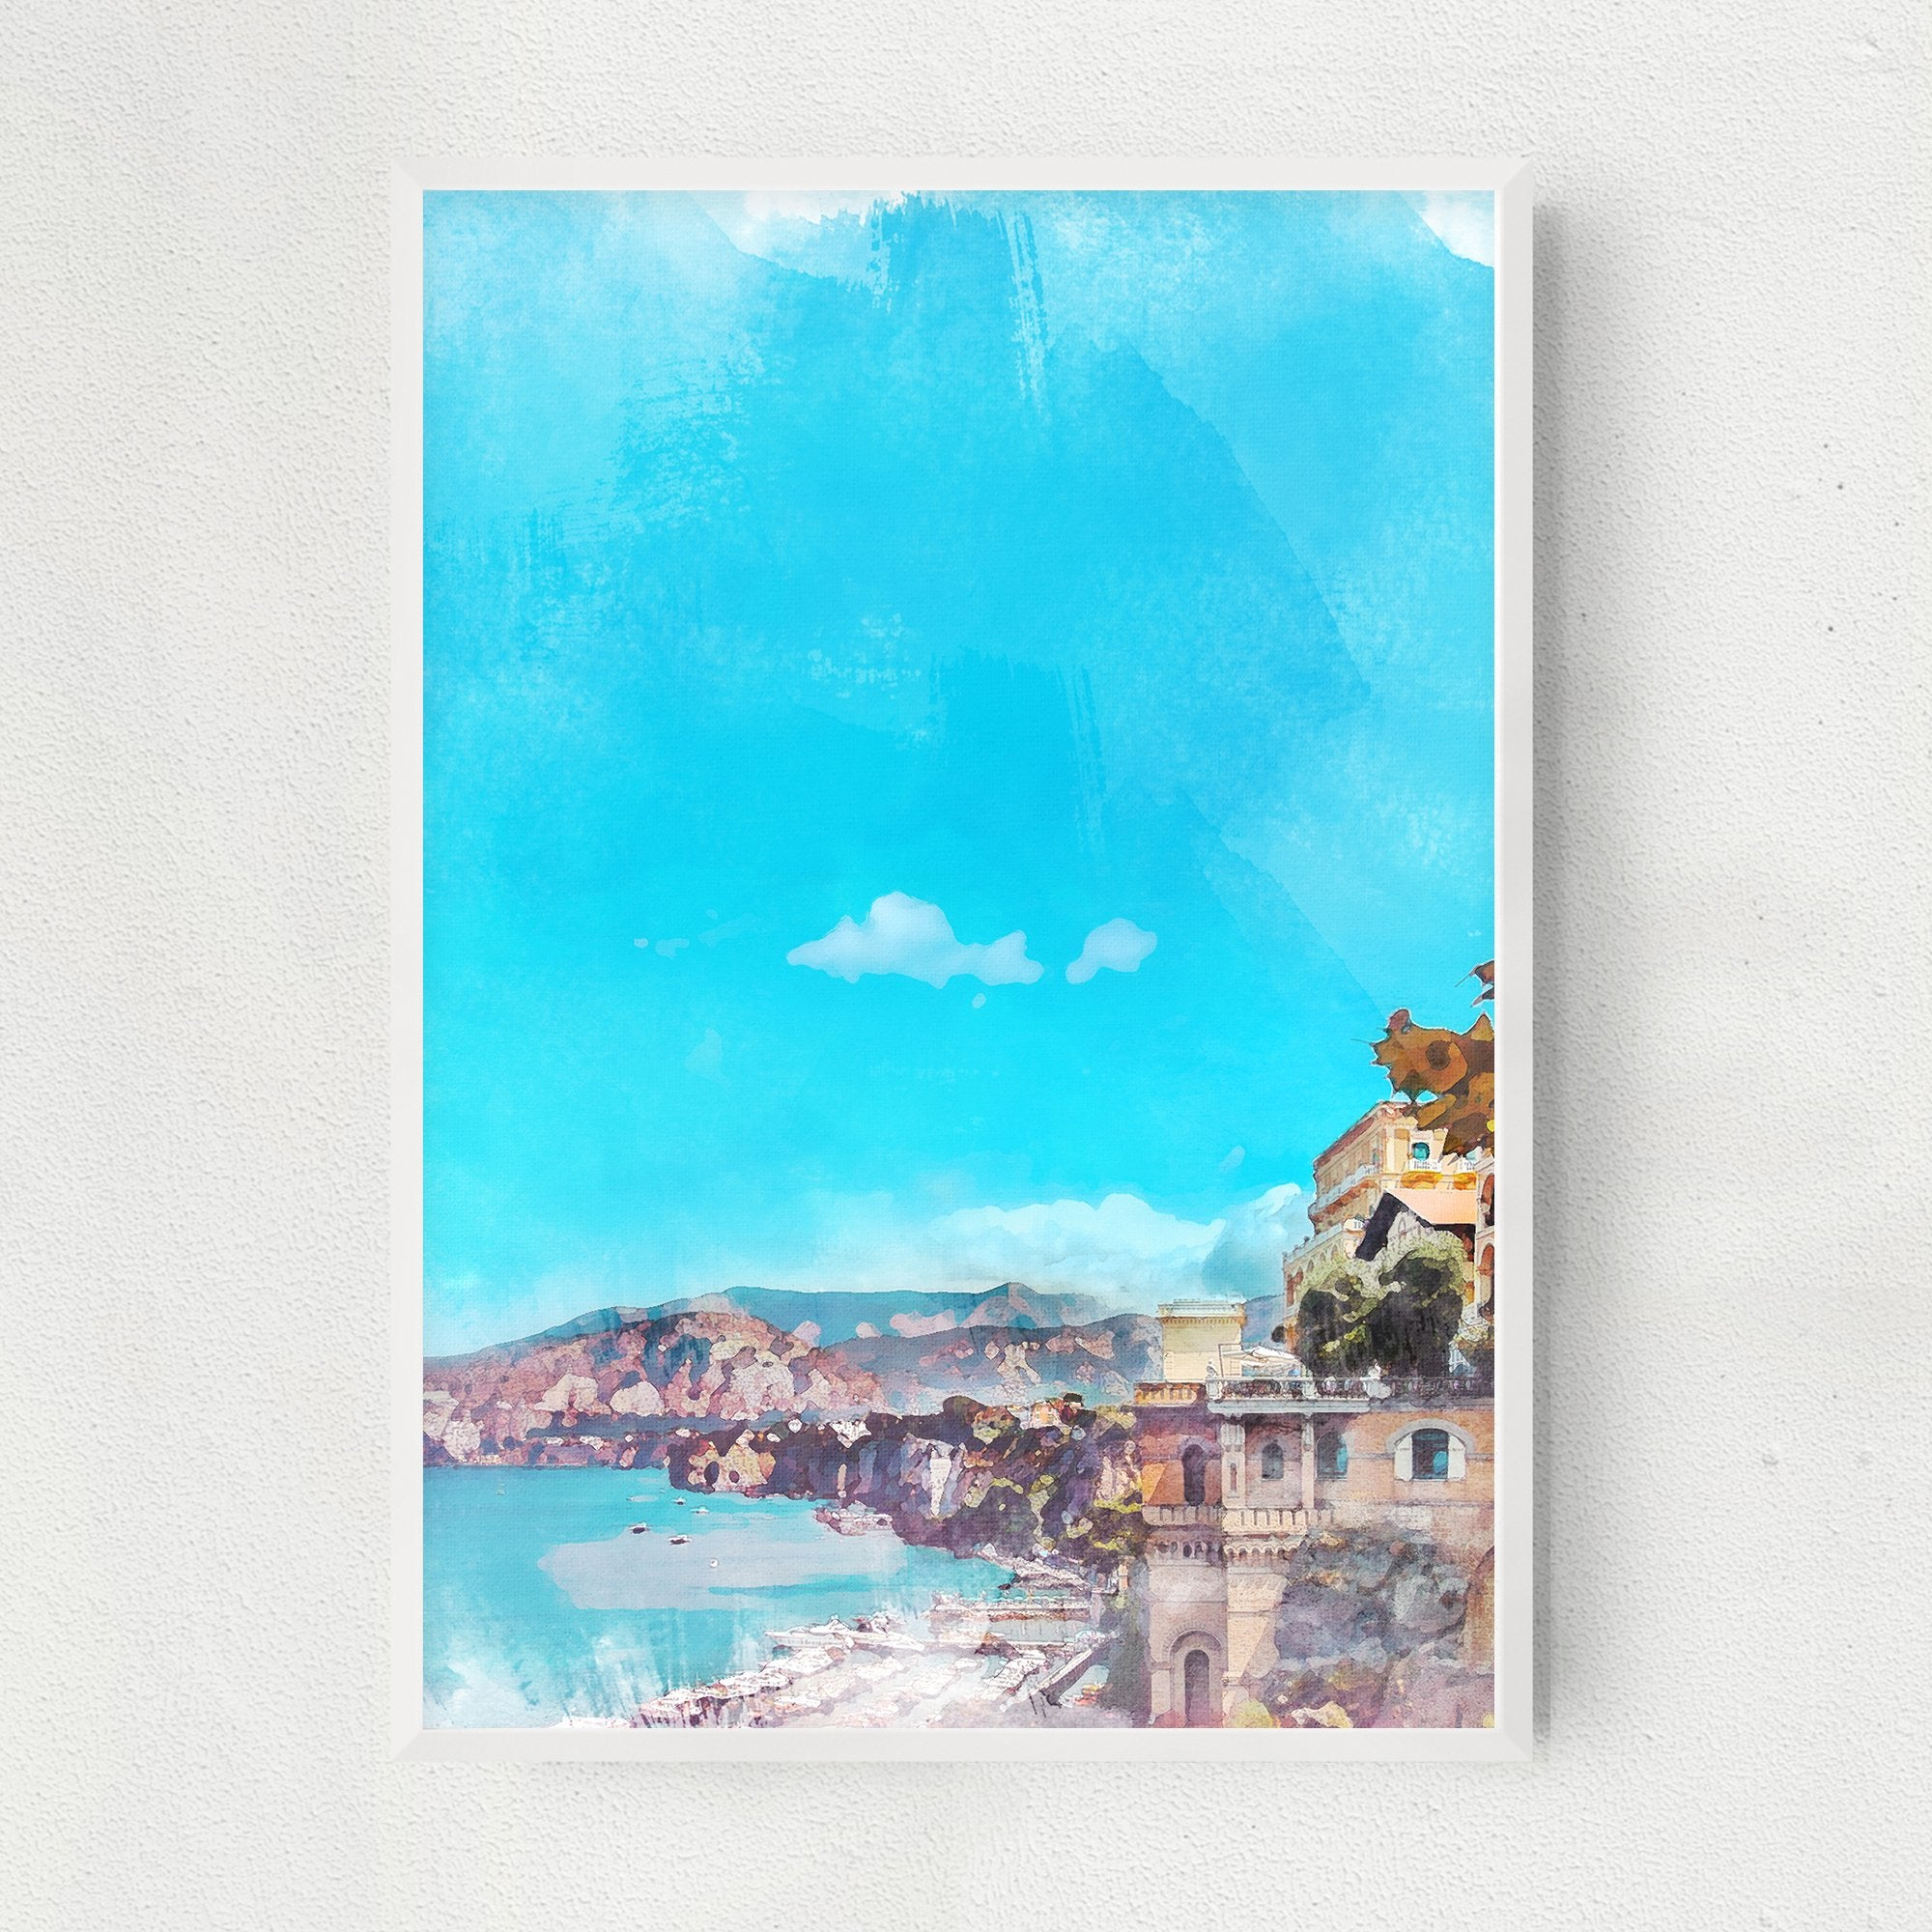 Blue Capri illustrated art print